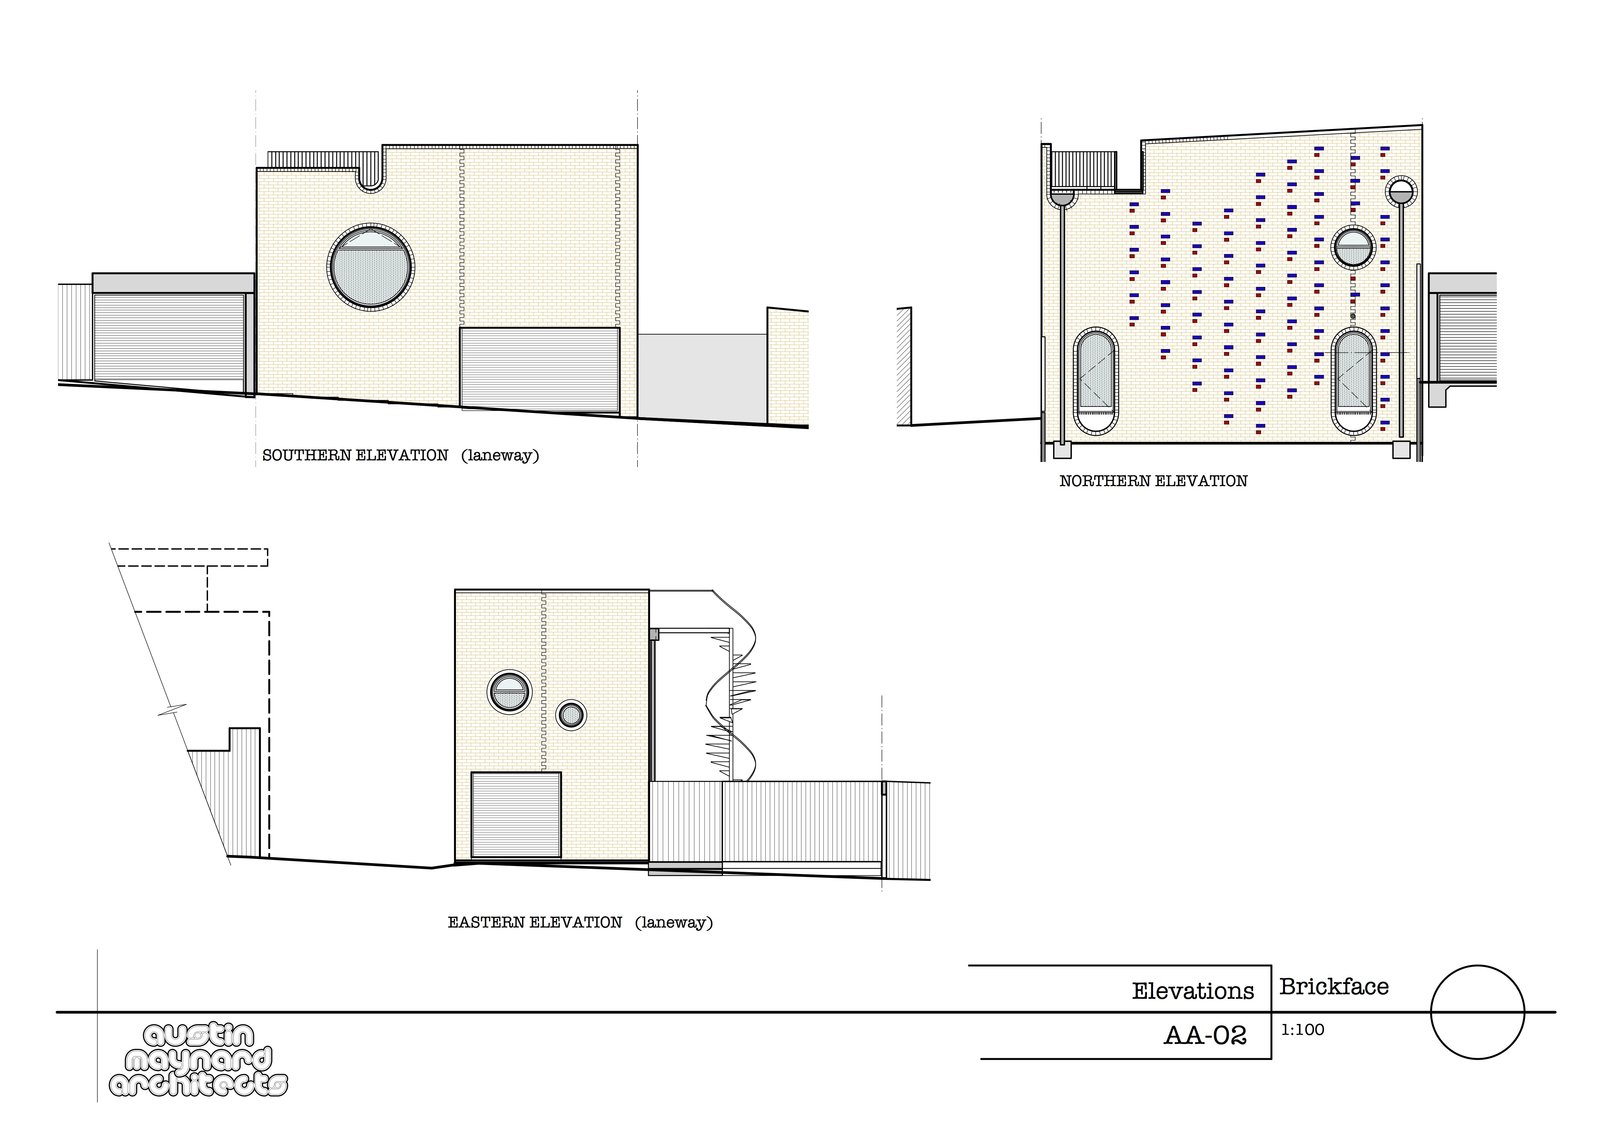 Photo 15 of 16 in A Creative Brick Extension That's Designed to Adapt With a Growing Family's Needs